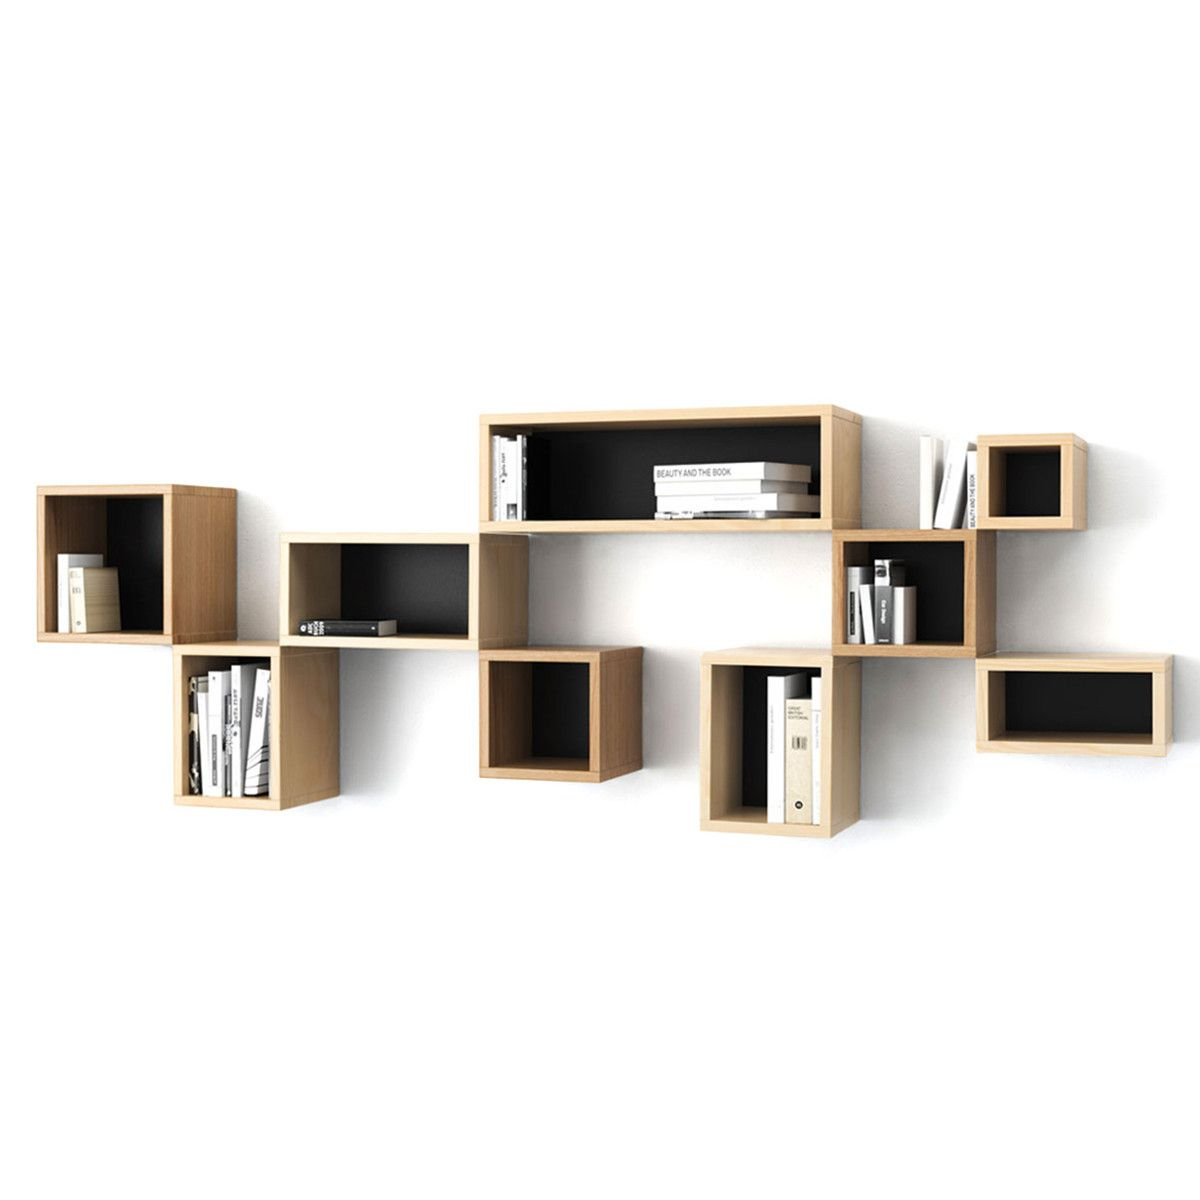 cube shelf 12x20 black | möbel, hylla, idéer